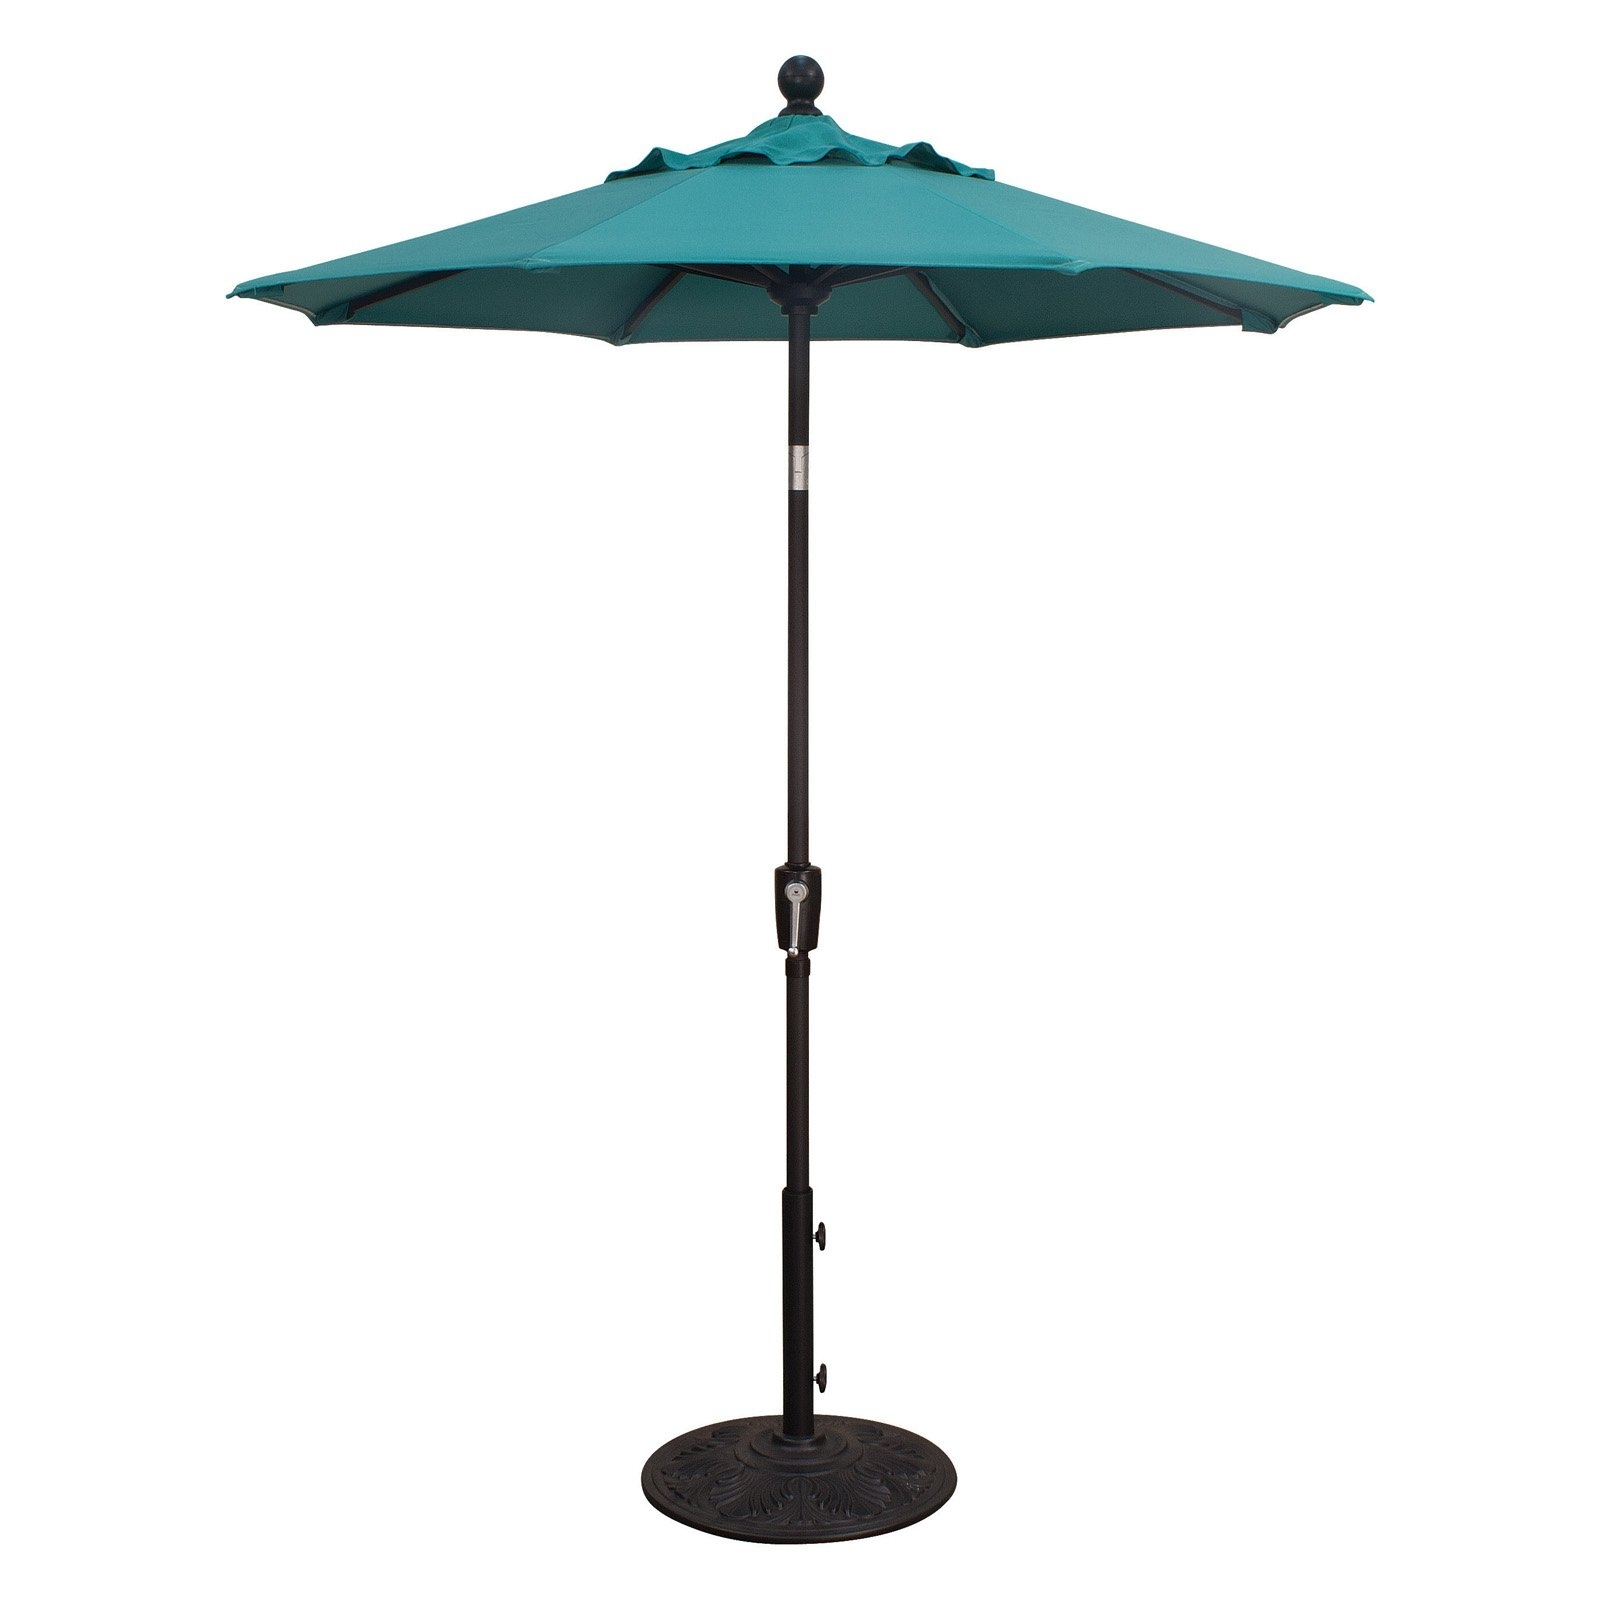 Most Popular Striped Sunbrella Patio Umbrellas For Treasure Garden 6 Ft (View 7 of 20)